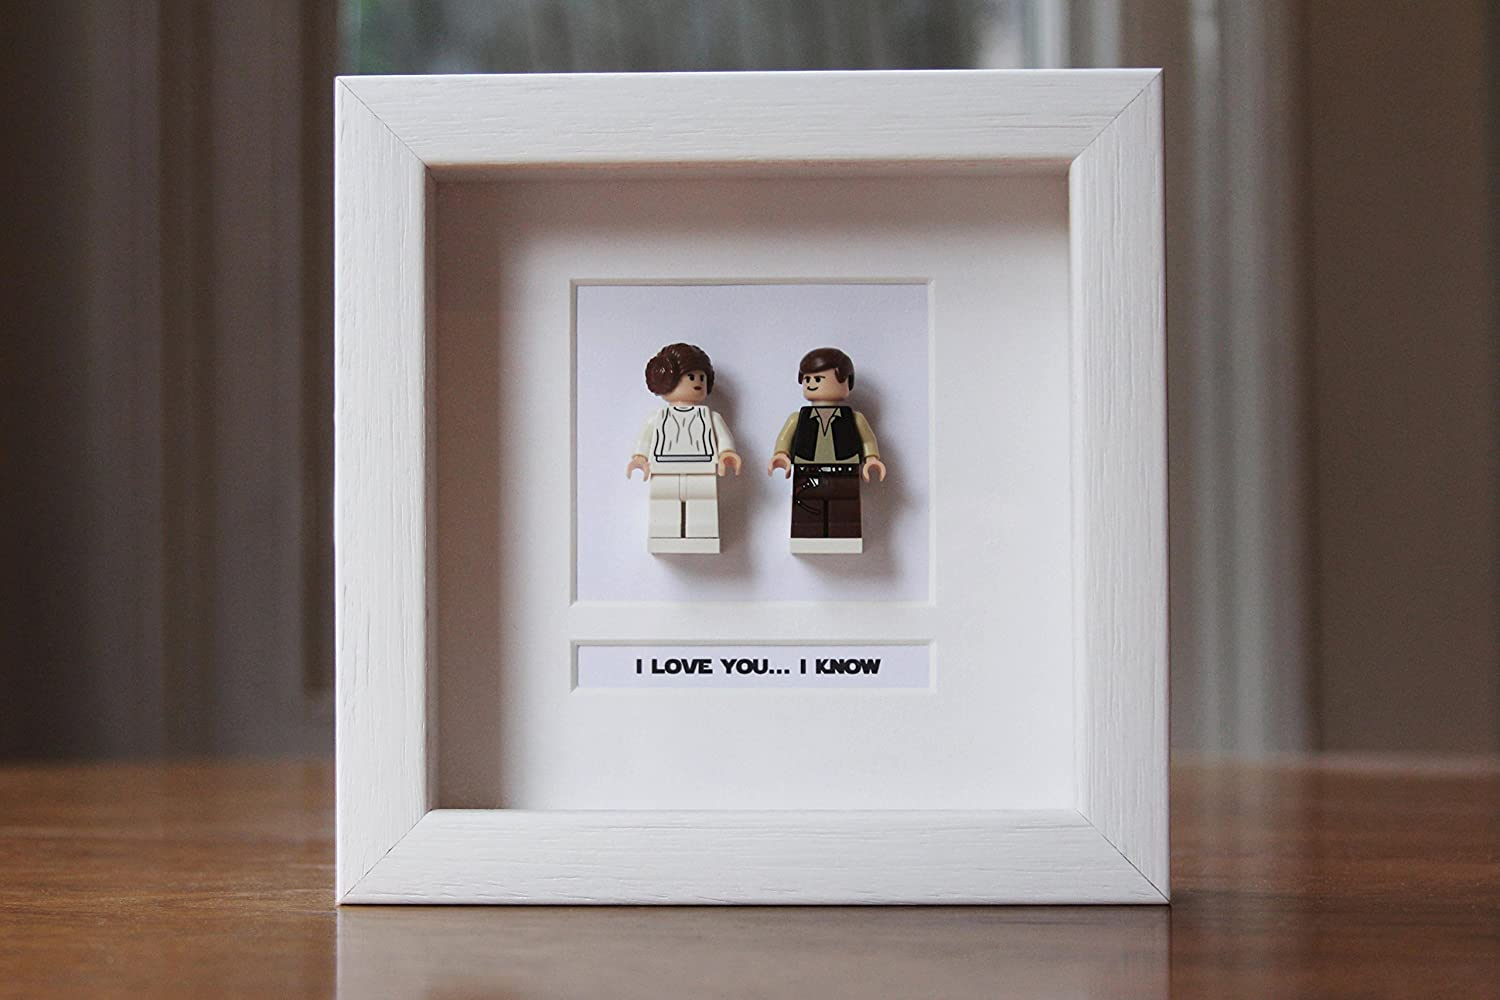 Star Wars Framed Mini Figures Han Leia Made From Lego Amazon